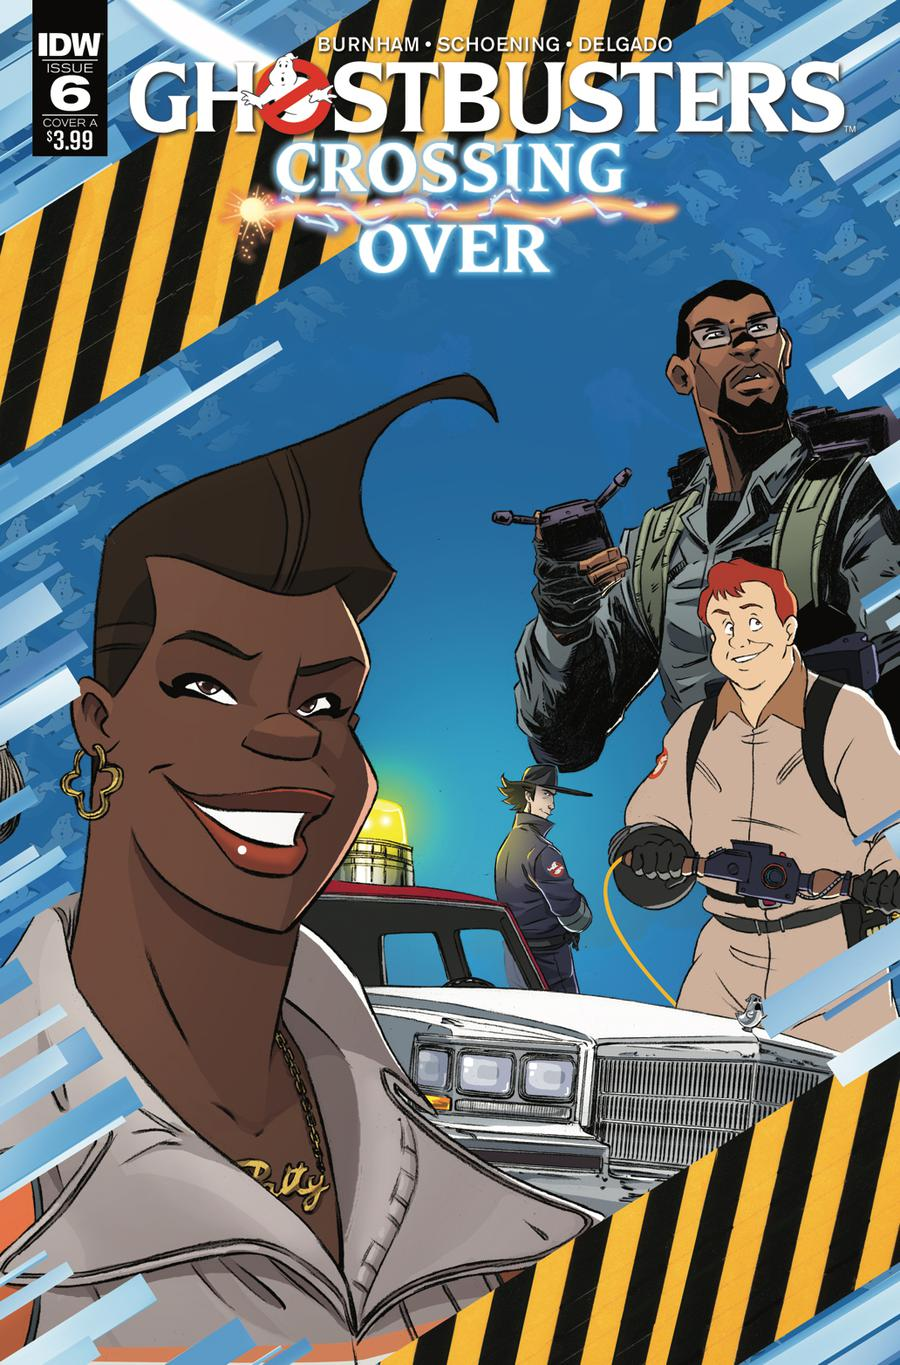 Ghostbusters Crossing Over #6 Cover A Regular Dan Schoening Cover